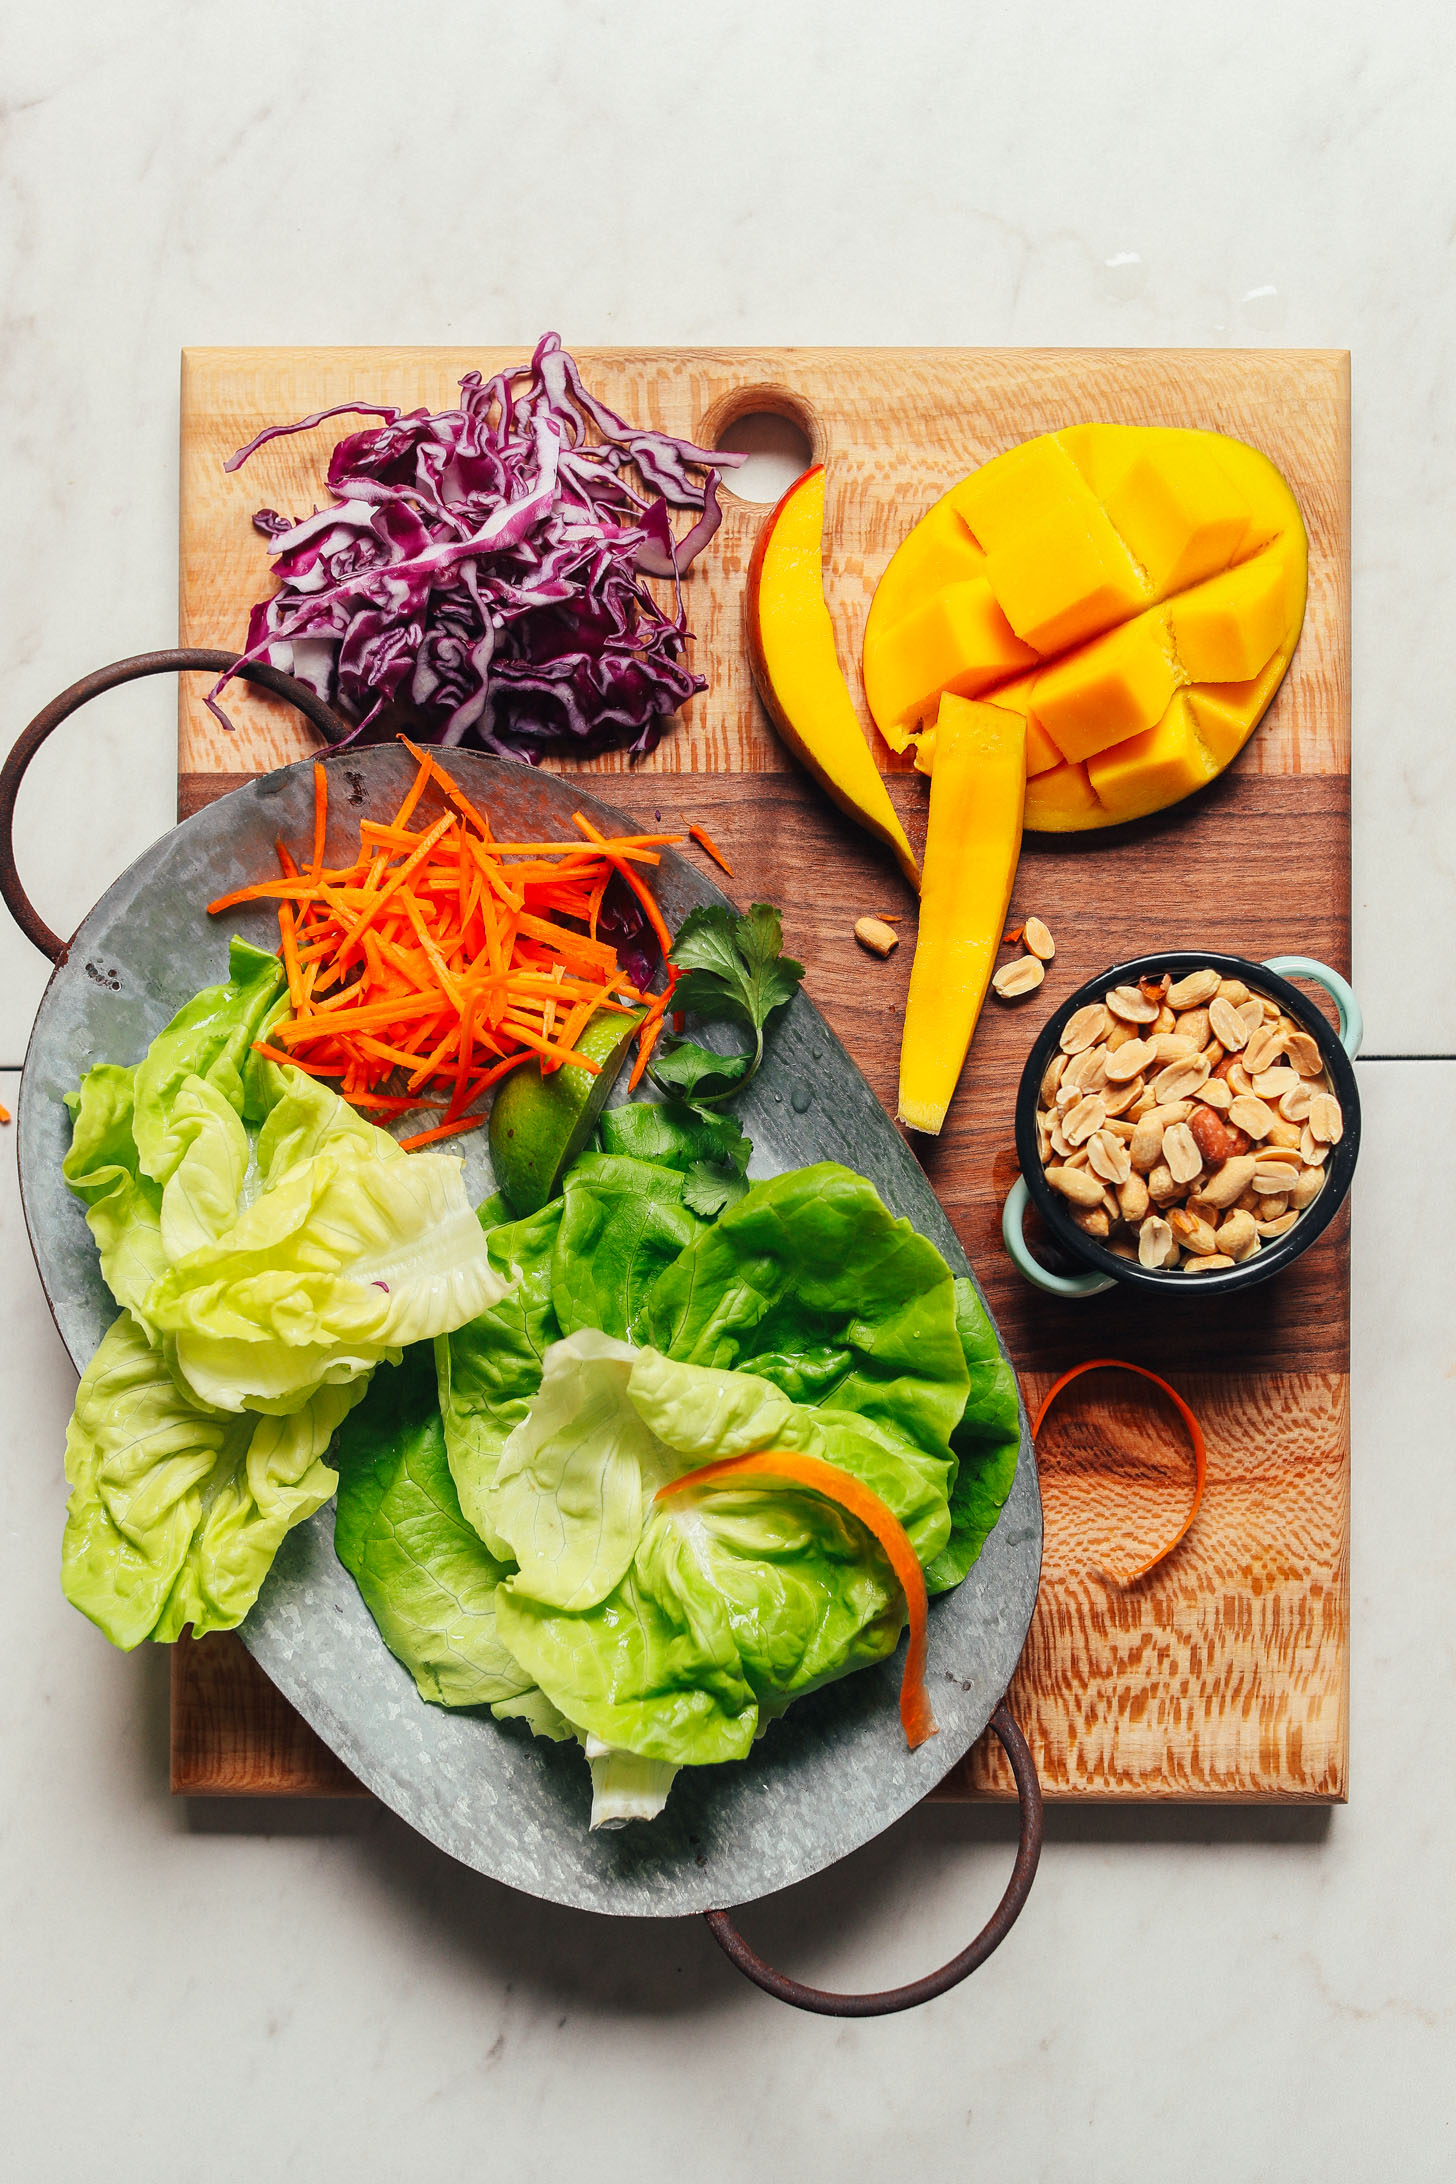 Cutting board with lettuce, carrots, red cabbage, mango, and peanuts for making a healthy vegan salad